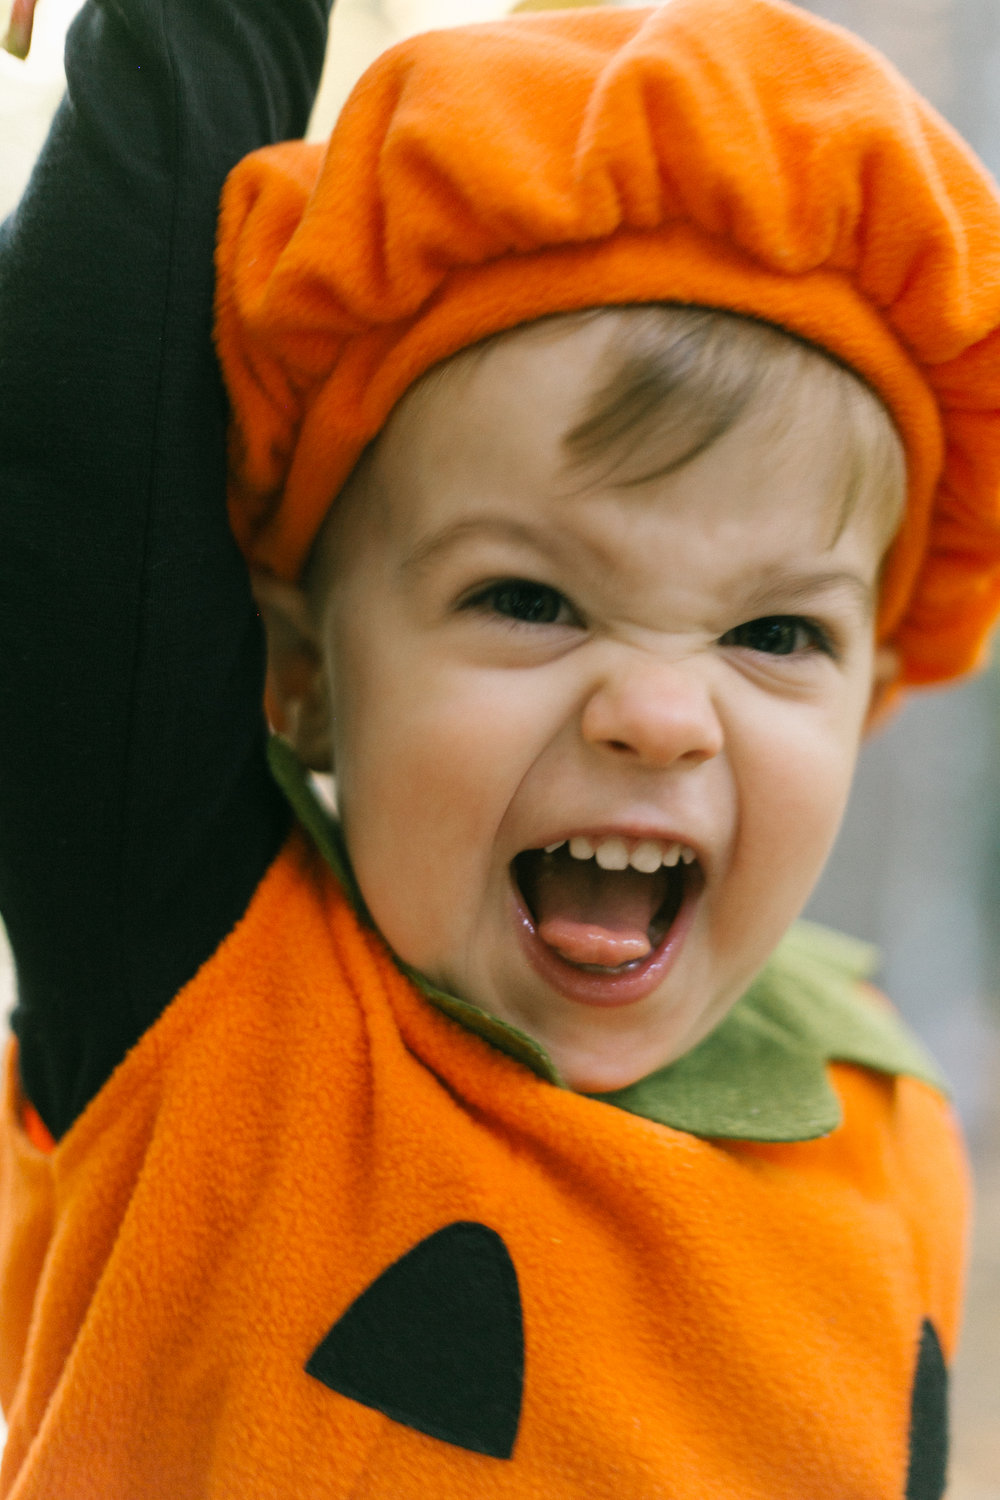 Halloween Kid Portraits at Home | Chelsea Macor Photography-10.jpg